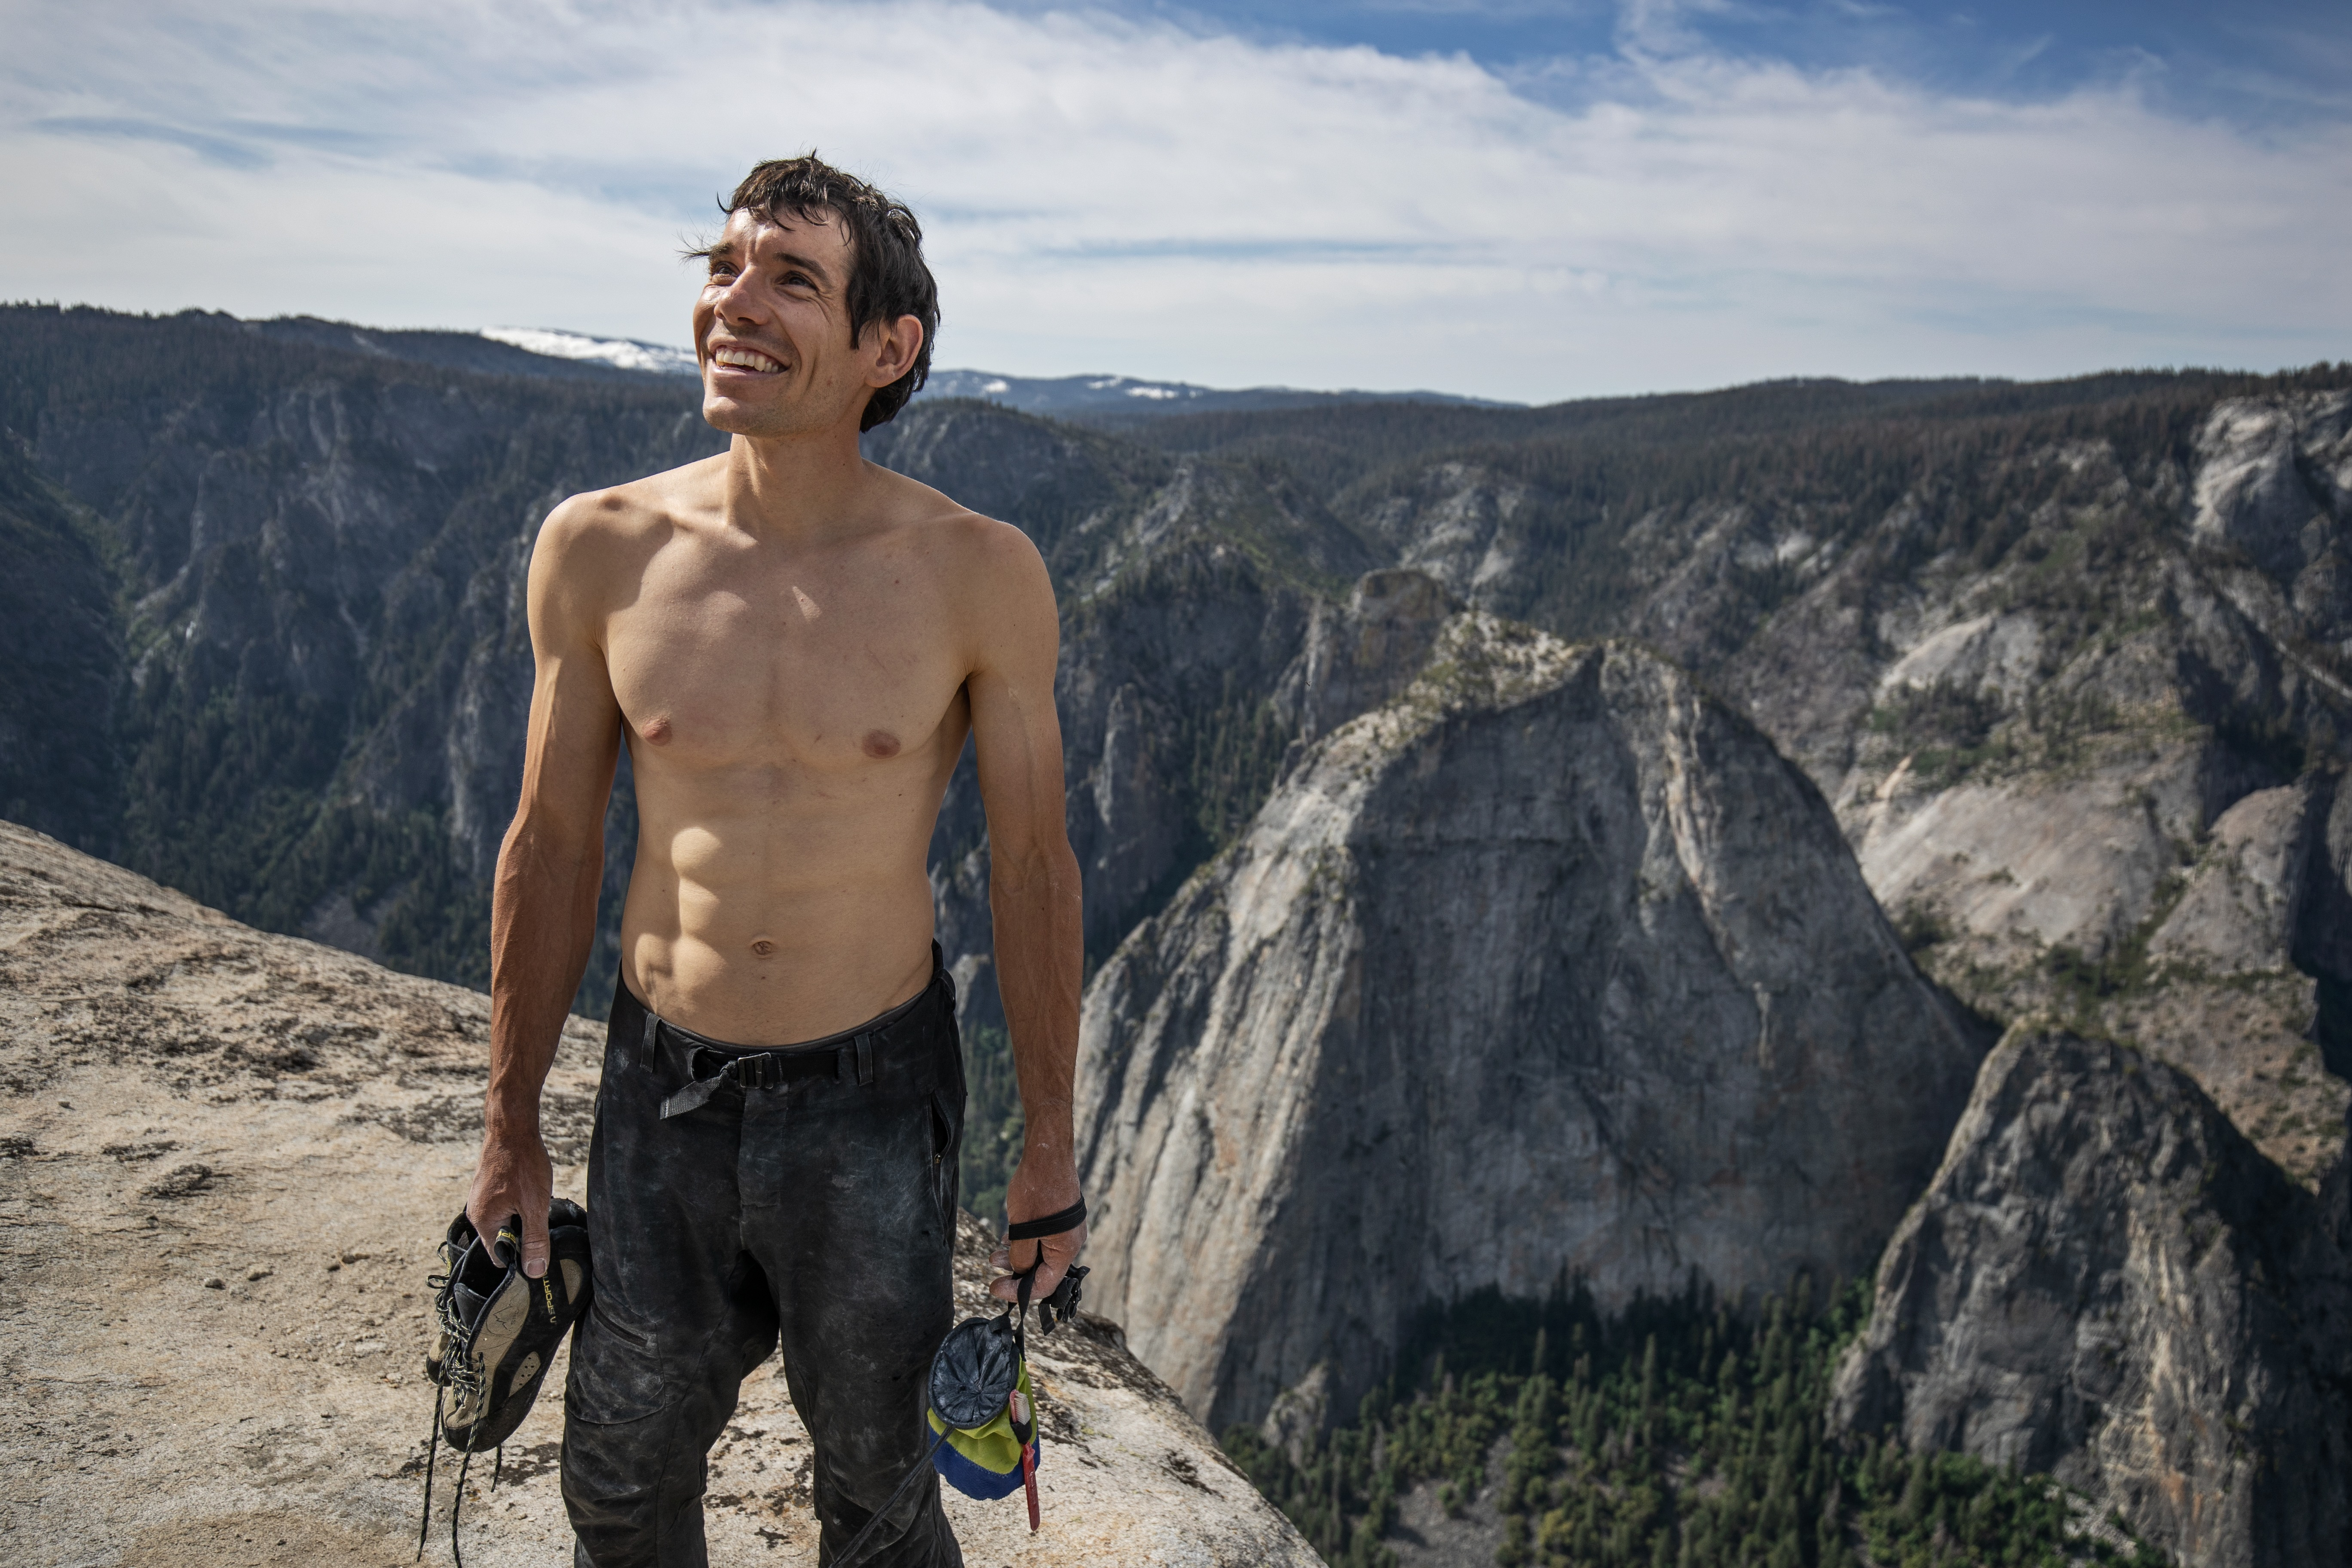 Alex Honnold holds all of his climbing gear atop the summit of El Capitan. He just became the first person to climb El Capitan without a rope. (National Geographic/Jimmy Chin)